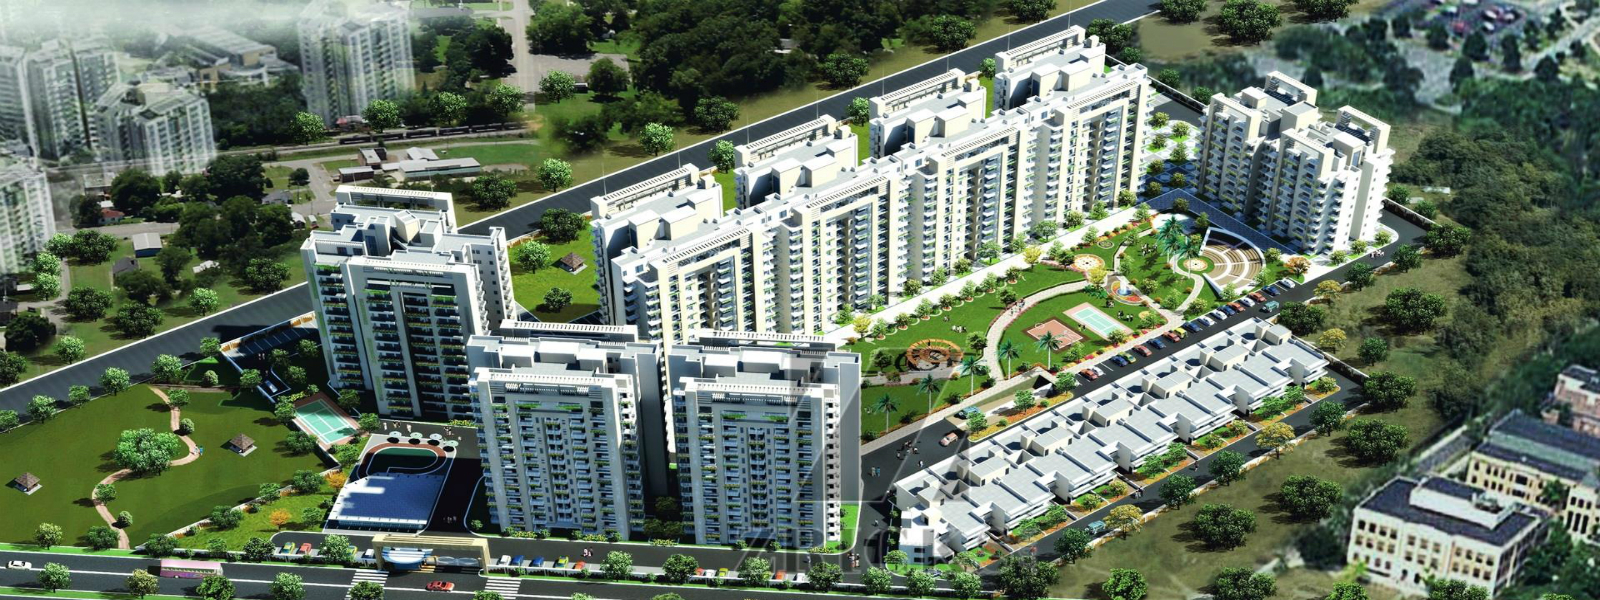 Residential Housing Project Gurgaon